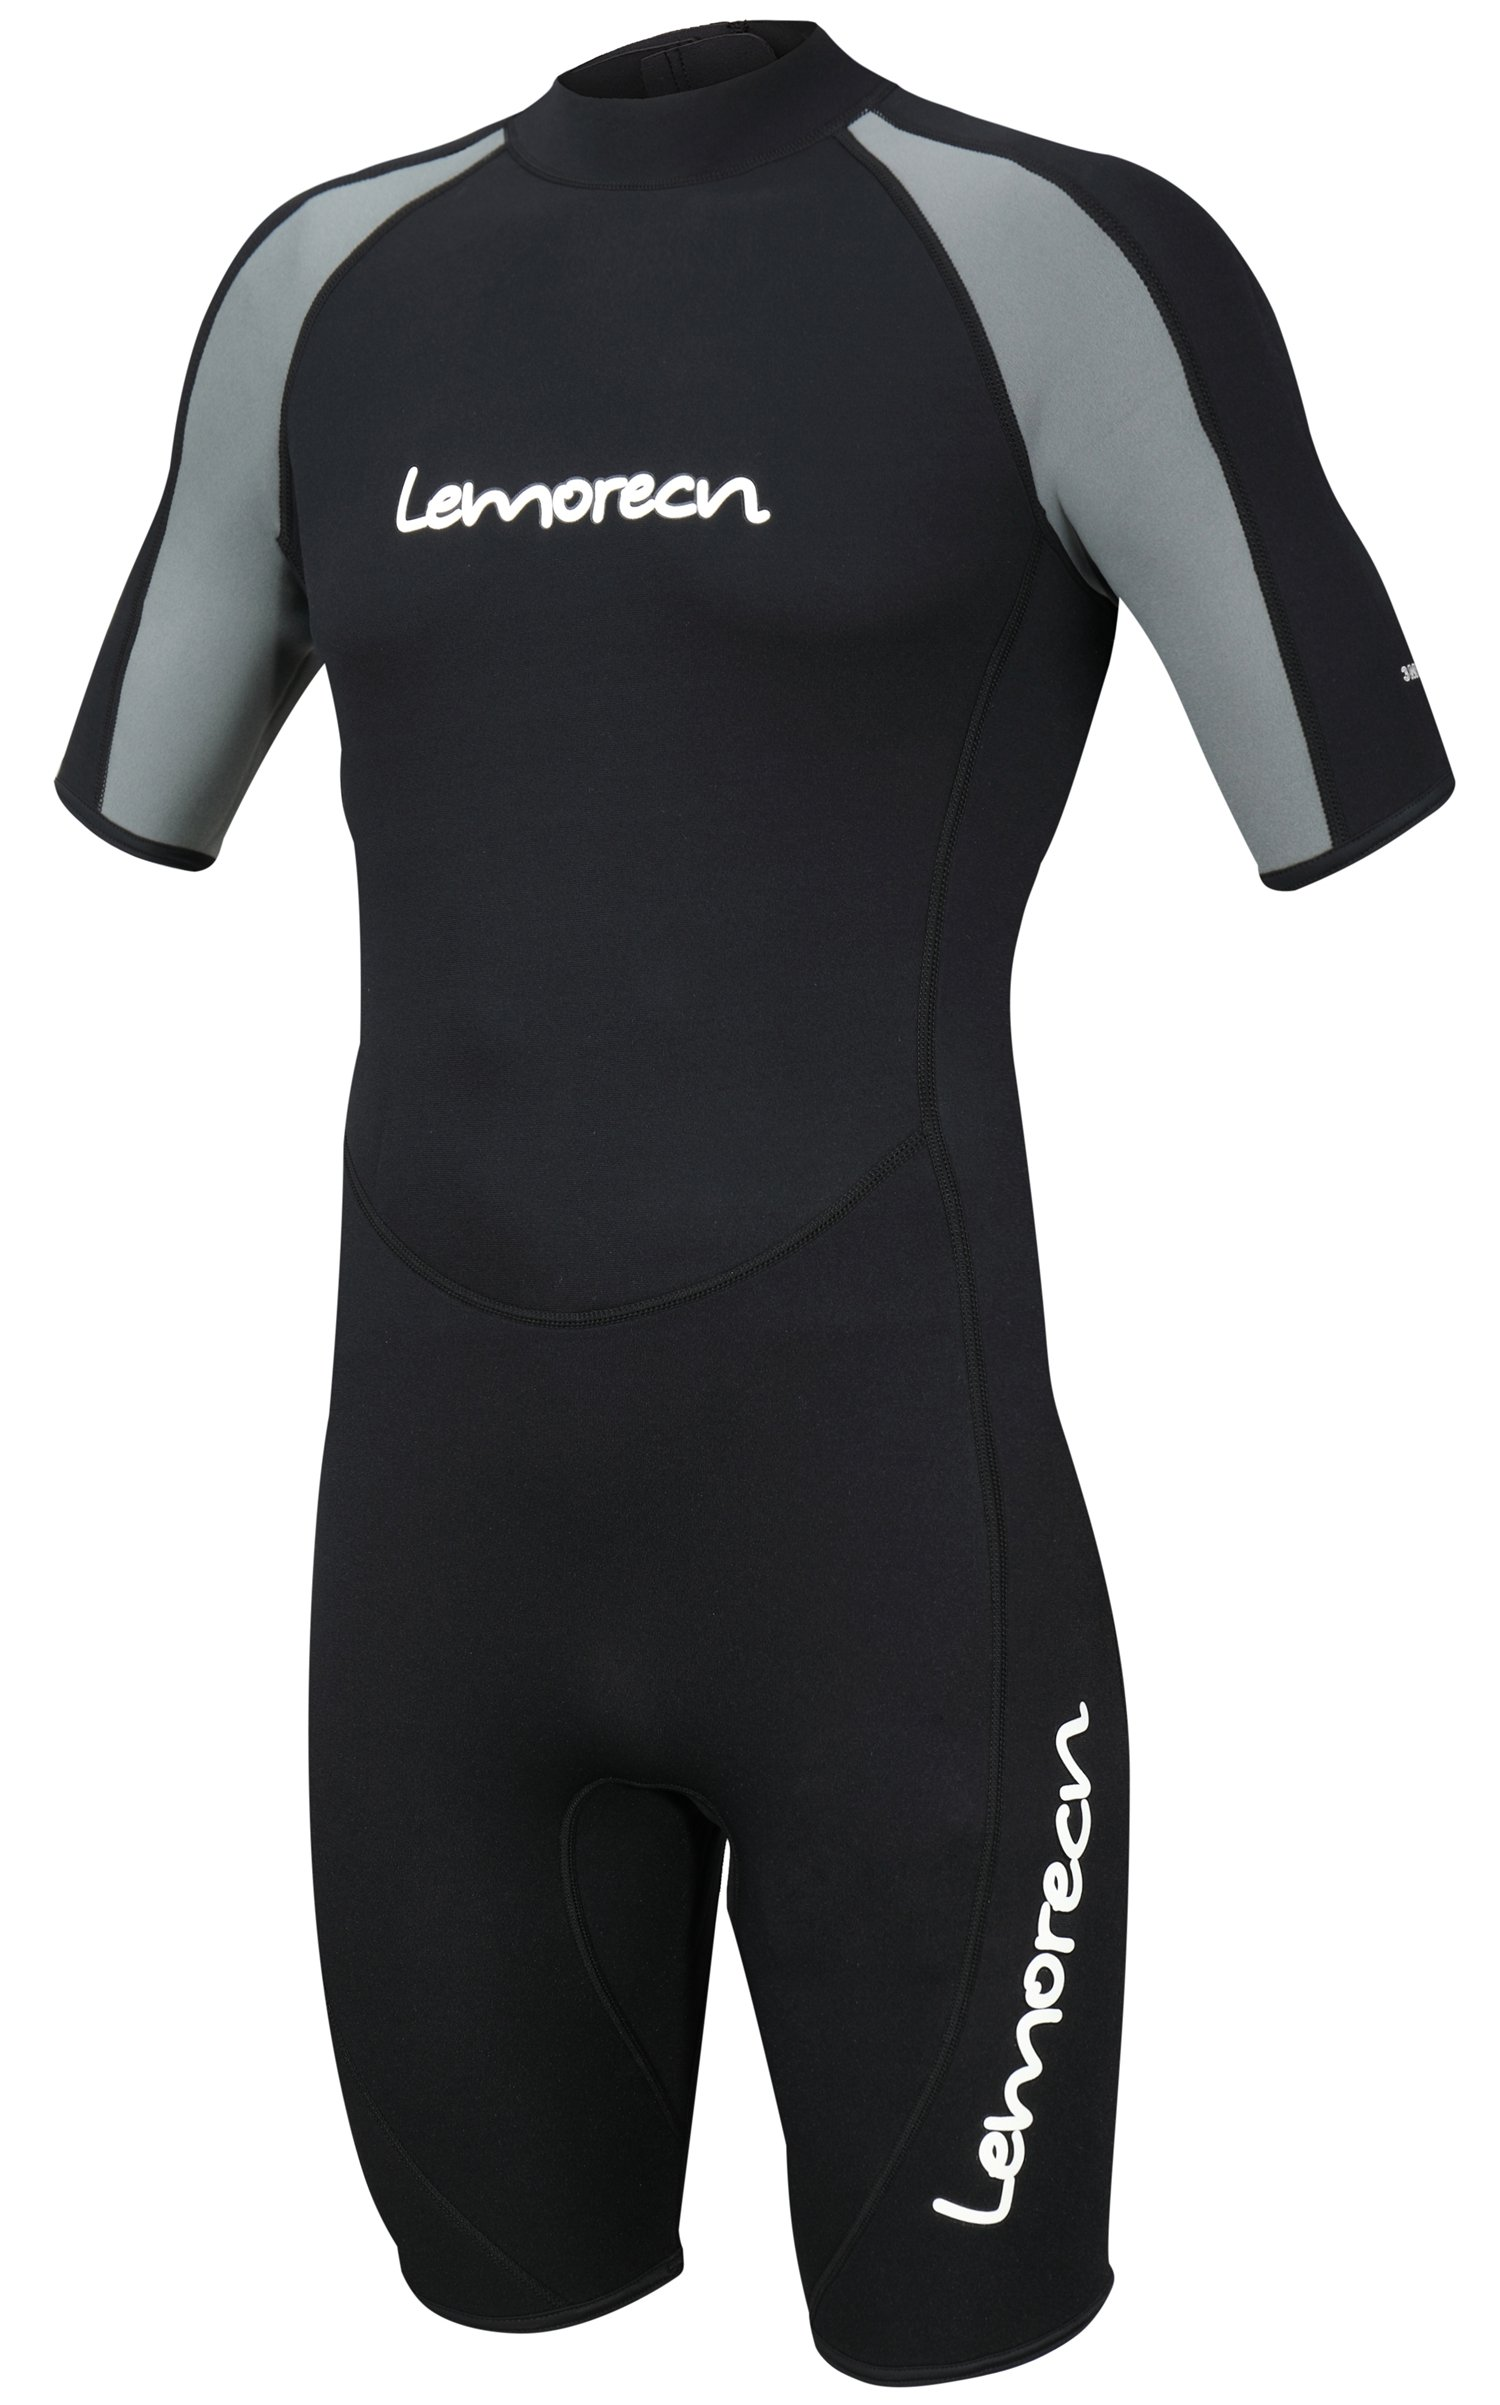 Lemorecn Wetsuits Mens Premium Neoprene Diving Suit 3mm Shorty Jumpsuit(3035blackgrey,2XL) by Lemorecn